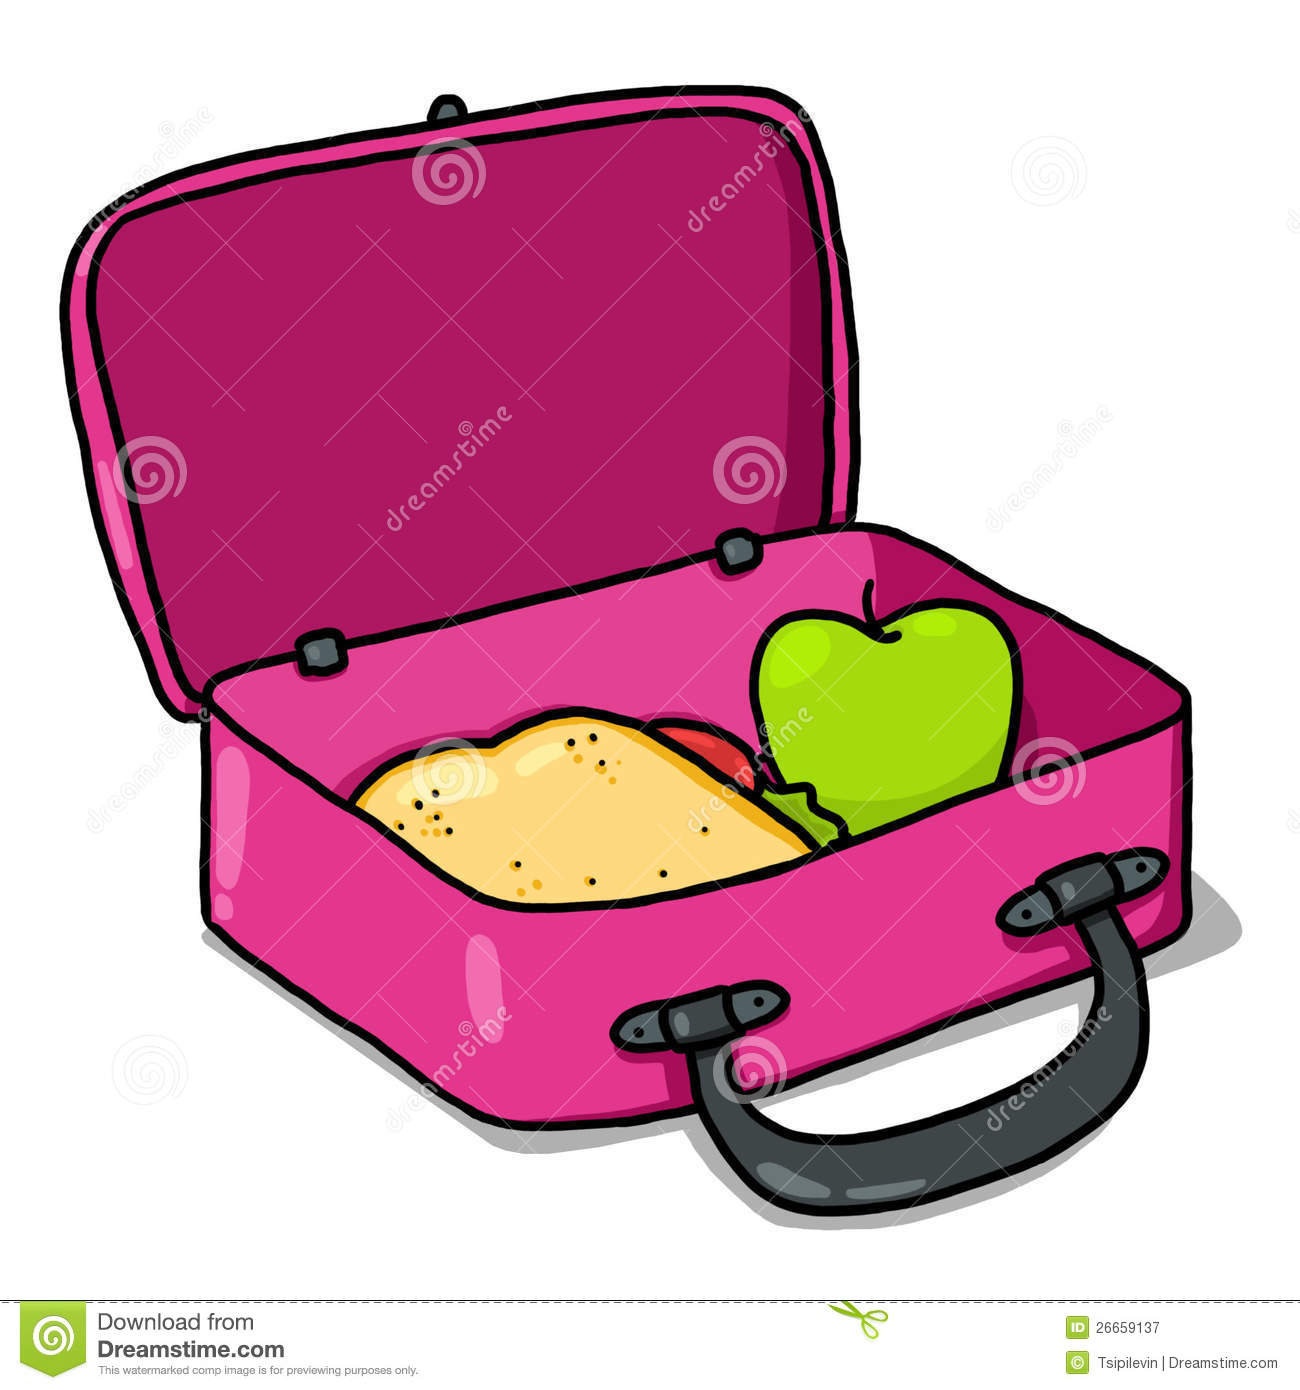 Box free download best. Lunchbox clipart hot lunch